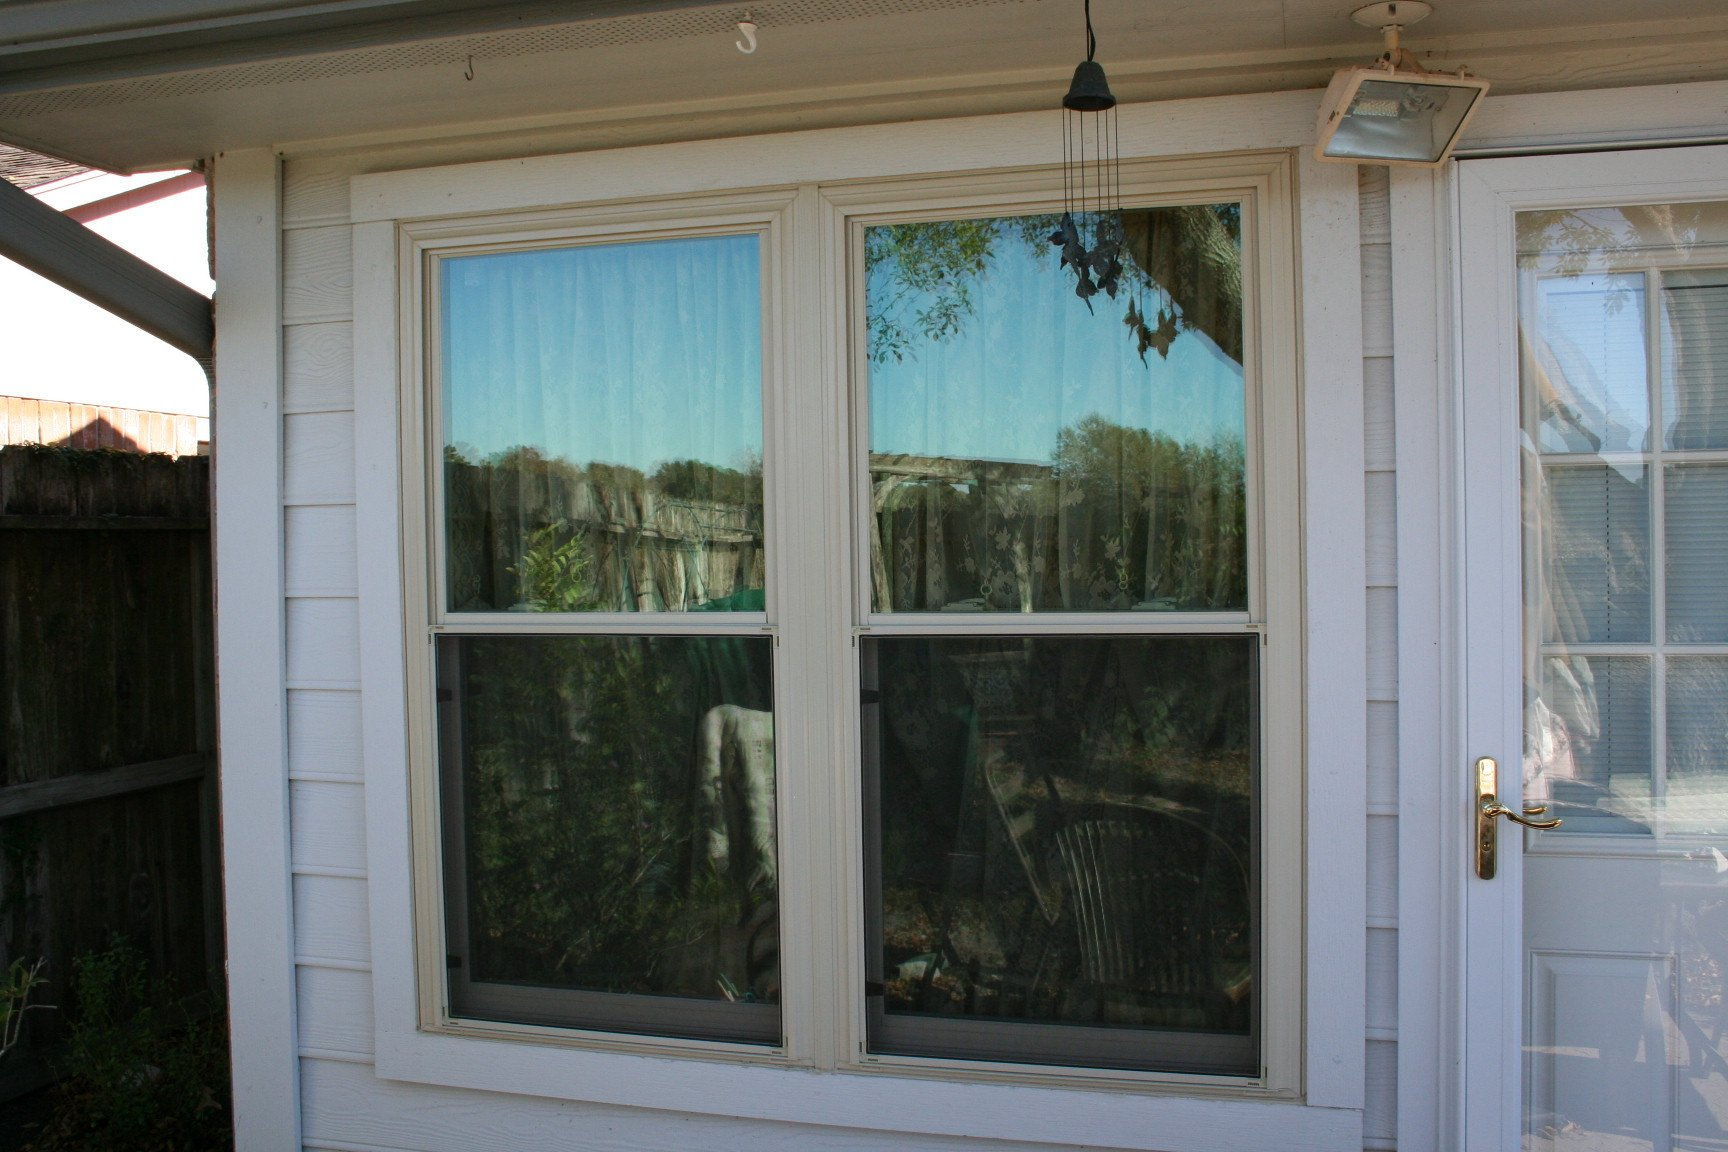 A j e m home design remodeling tomball tx window for Home window replacement